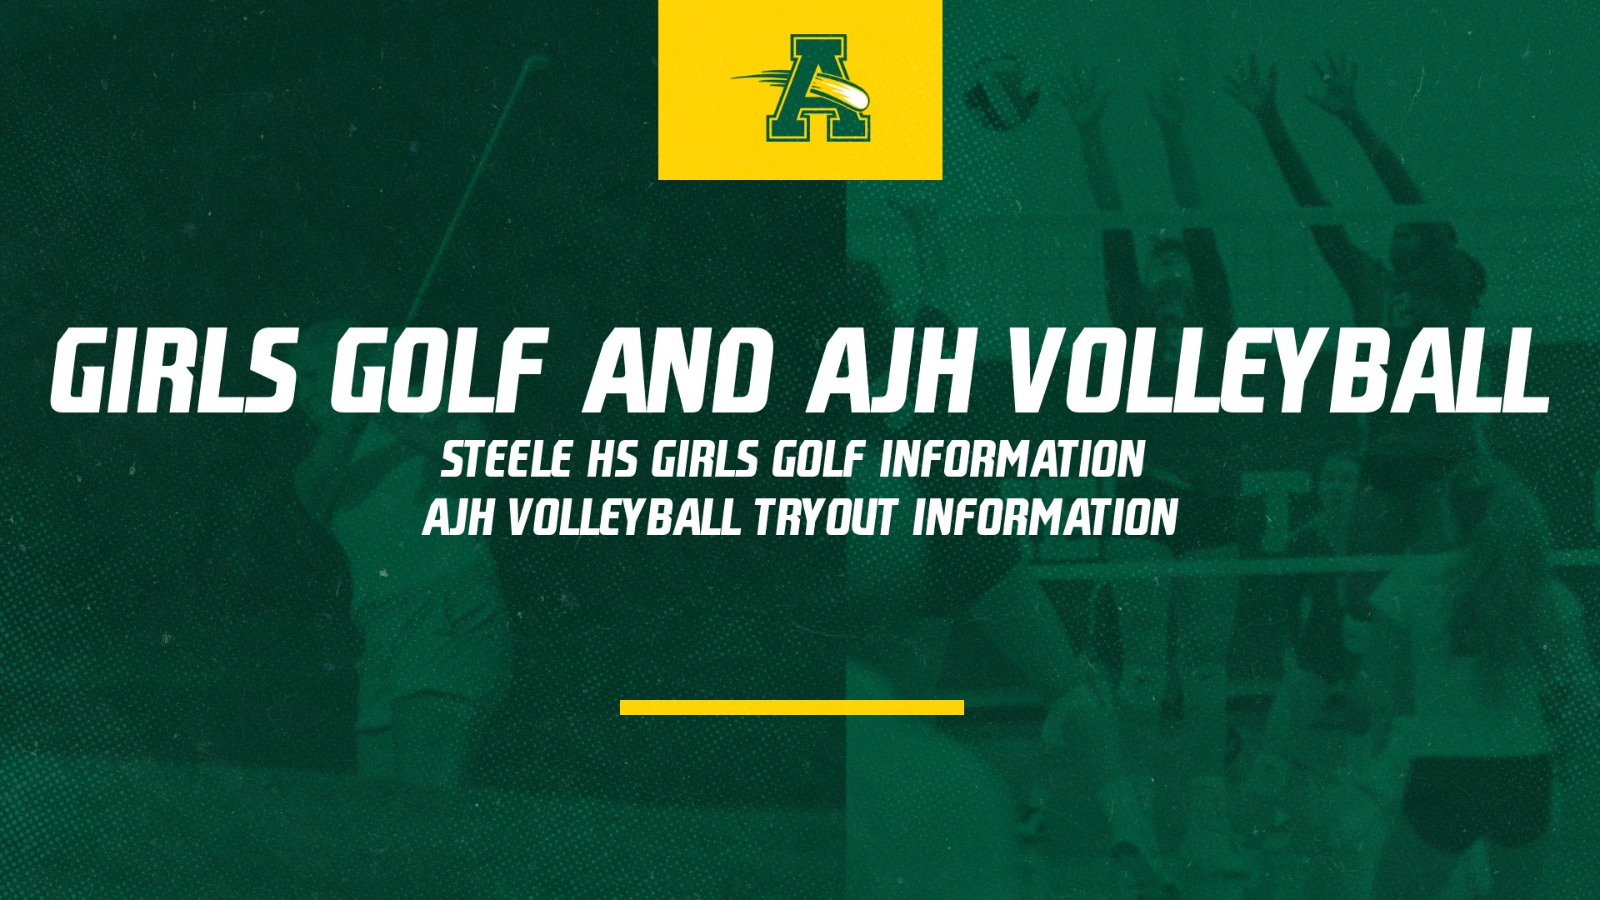 Girls Golf and AJH Volleyball Tryout Information